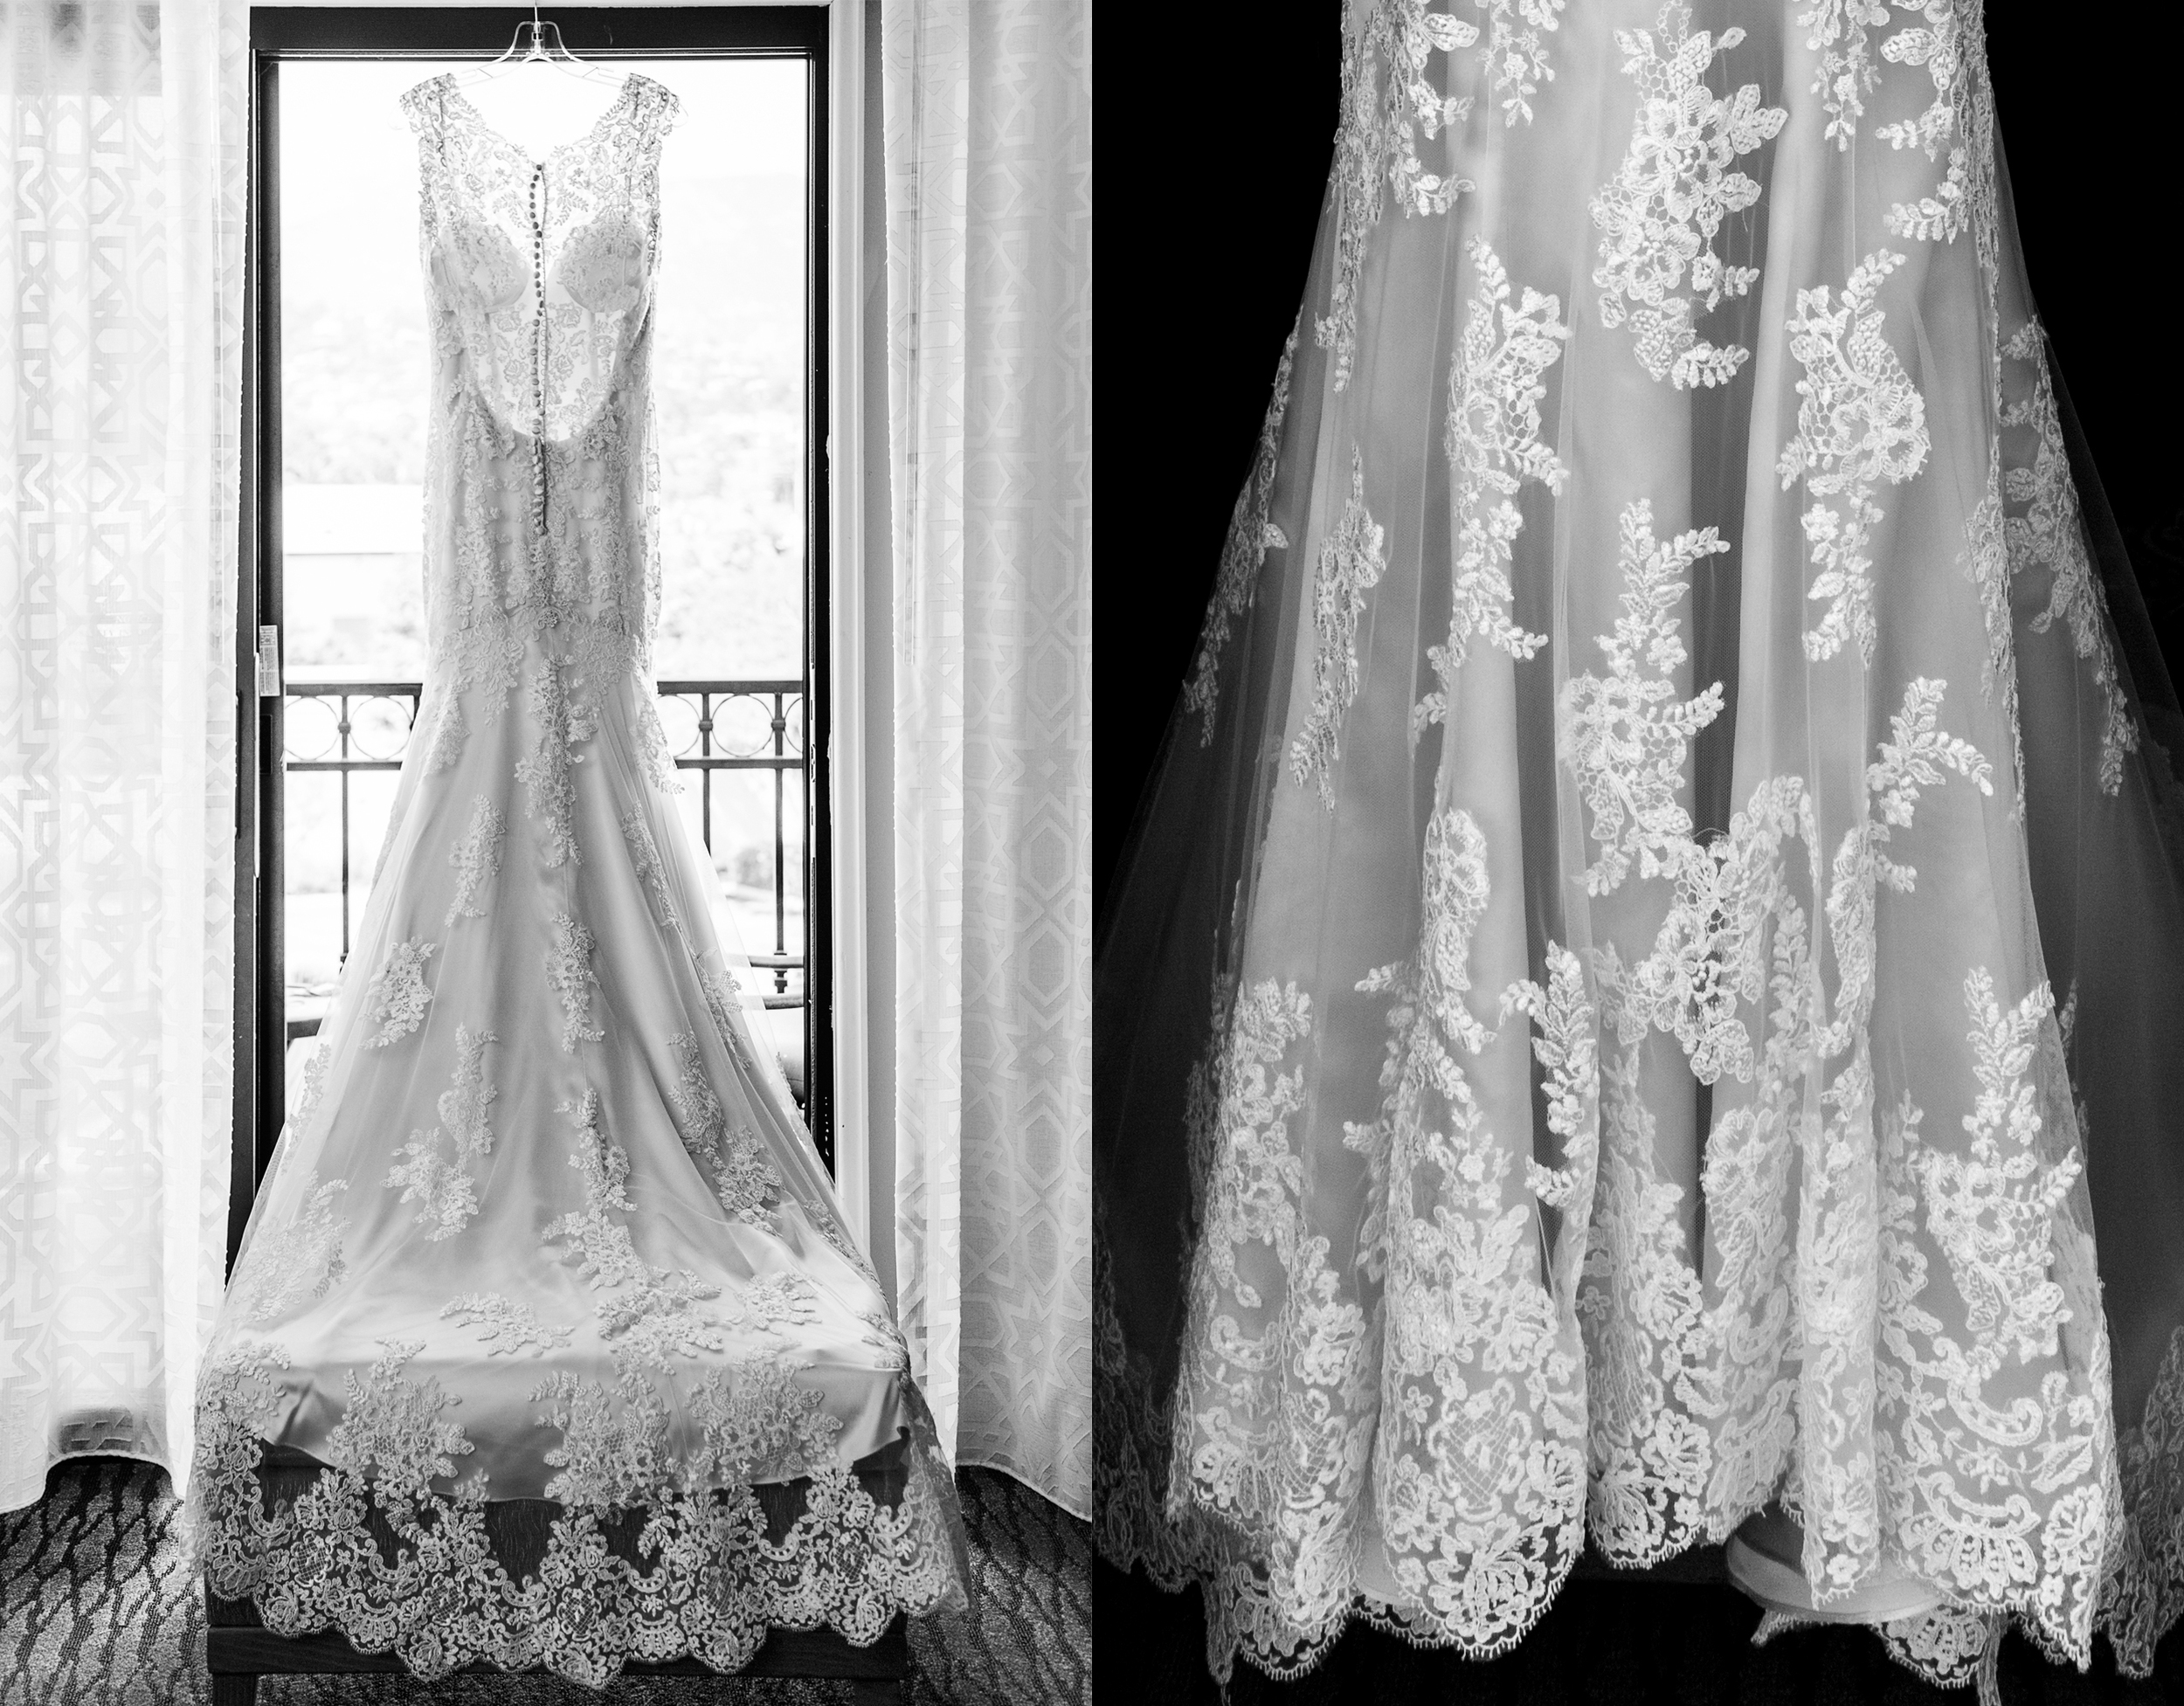 Wedding Dress Details Black and White